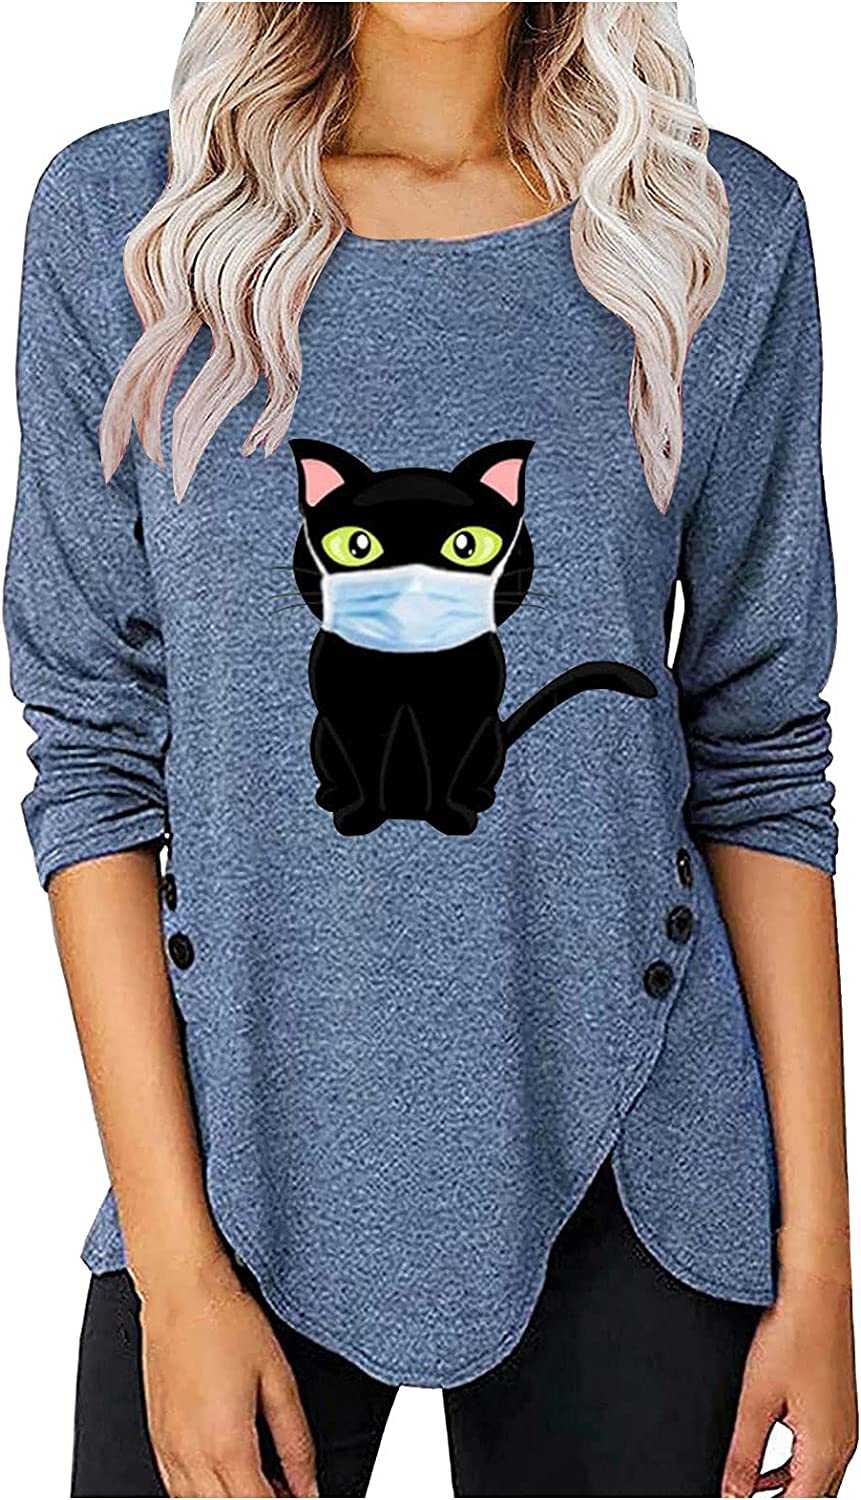 Selling rankings Womens Tops and Blouses Printed Top Long-Sleeved T-Shirt Max 66% OFF Button